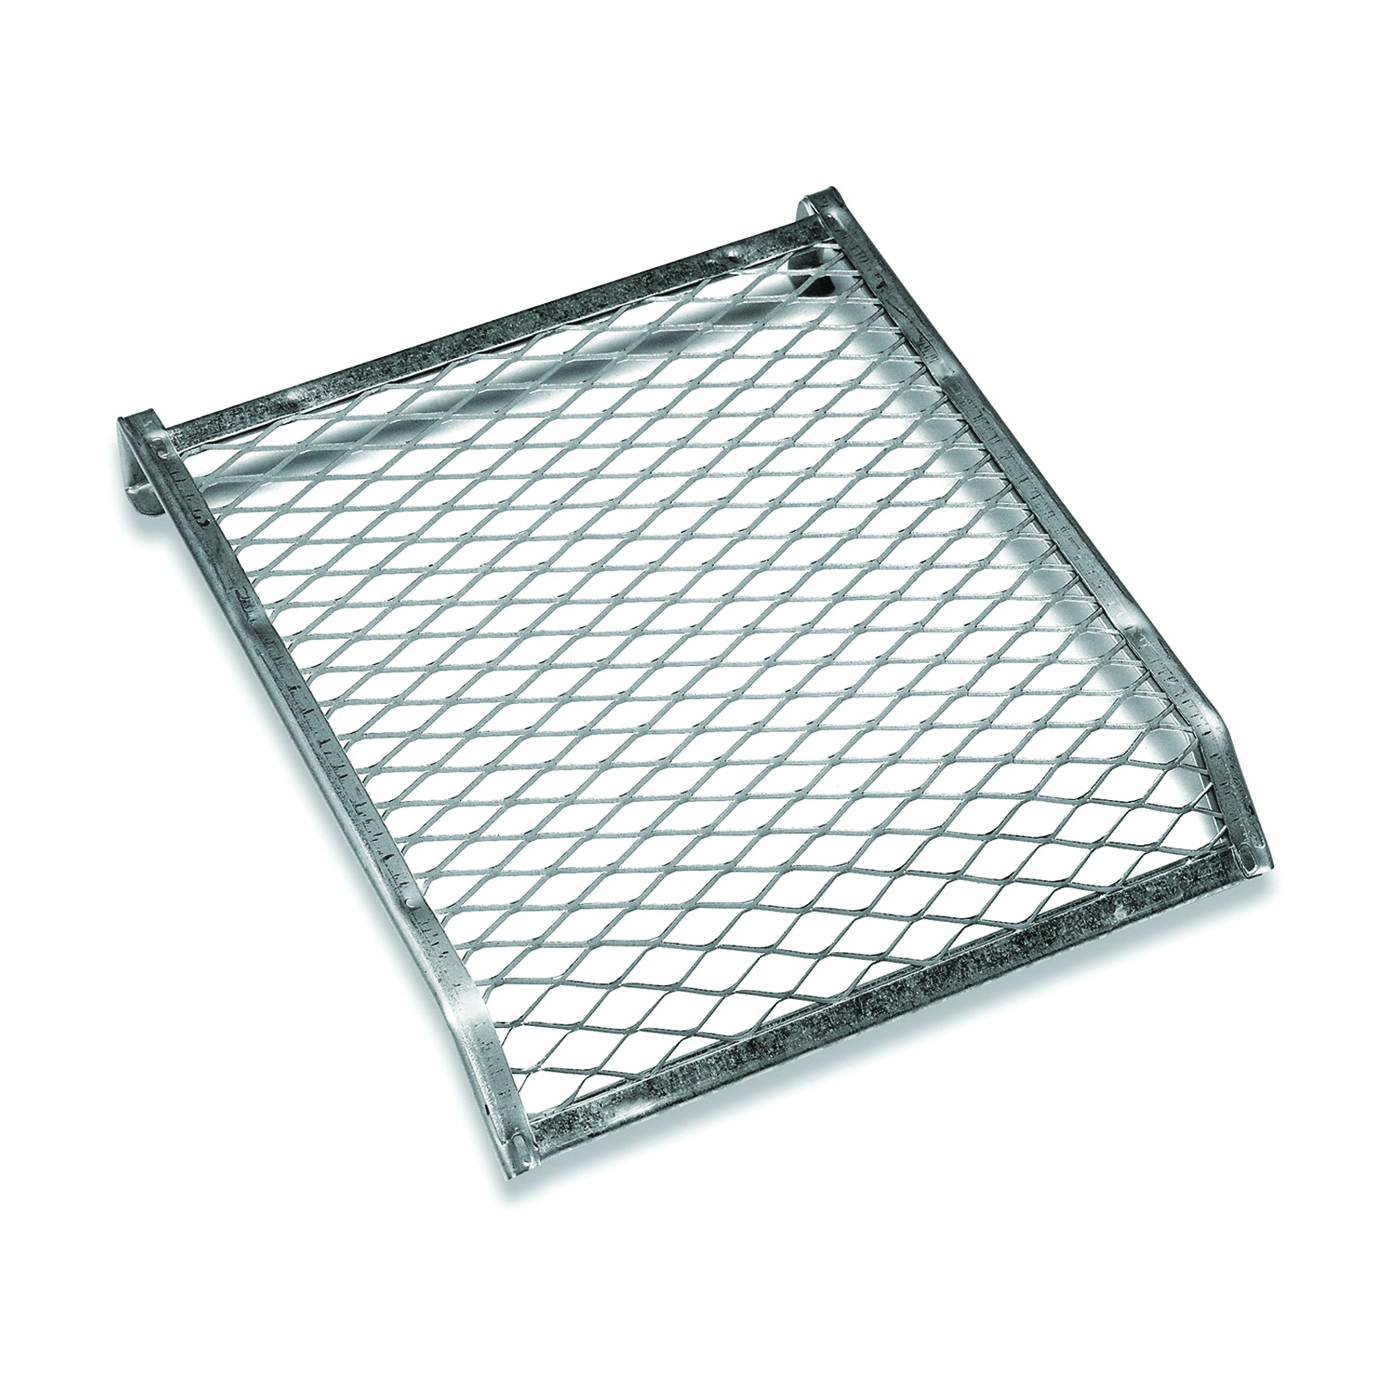 Picture of WOOSTER F0001 Wire Spreader Screen, 11-1/2 in L, 10 in W, Steel, Silver, For: 5 gal Buckets